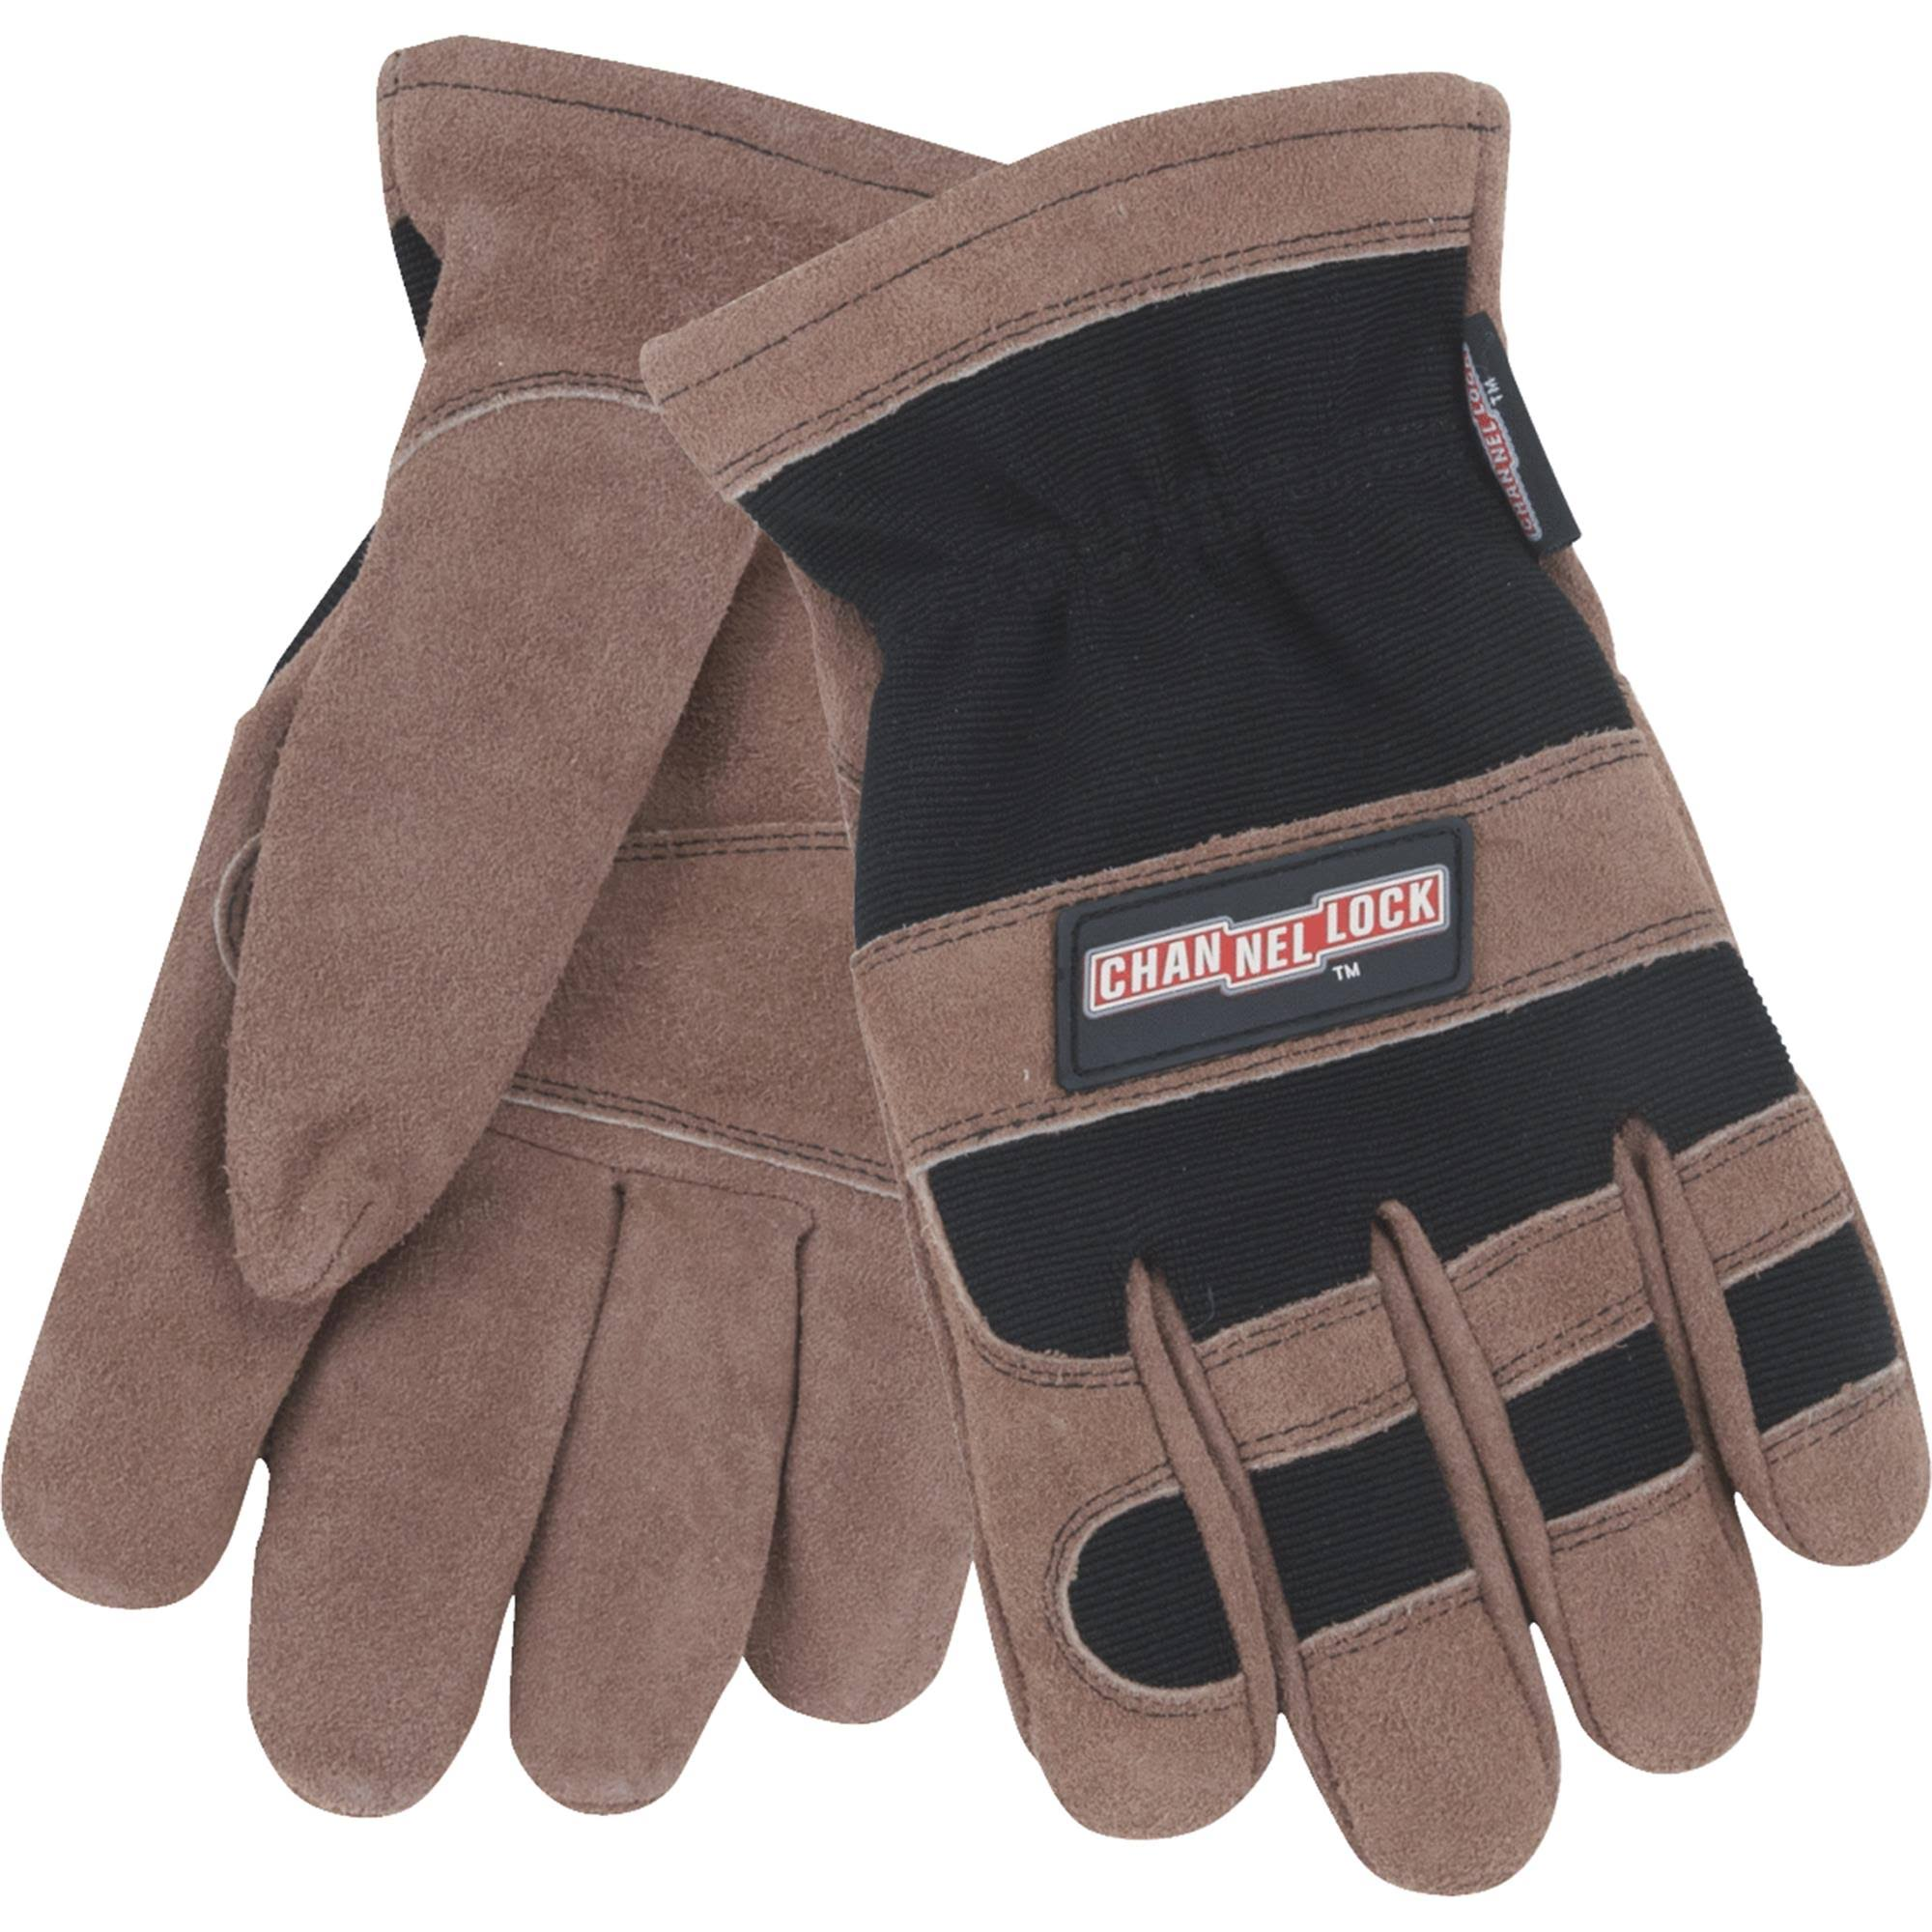 Channellock 706509 Winter Work Glove